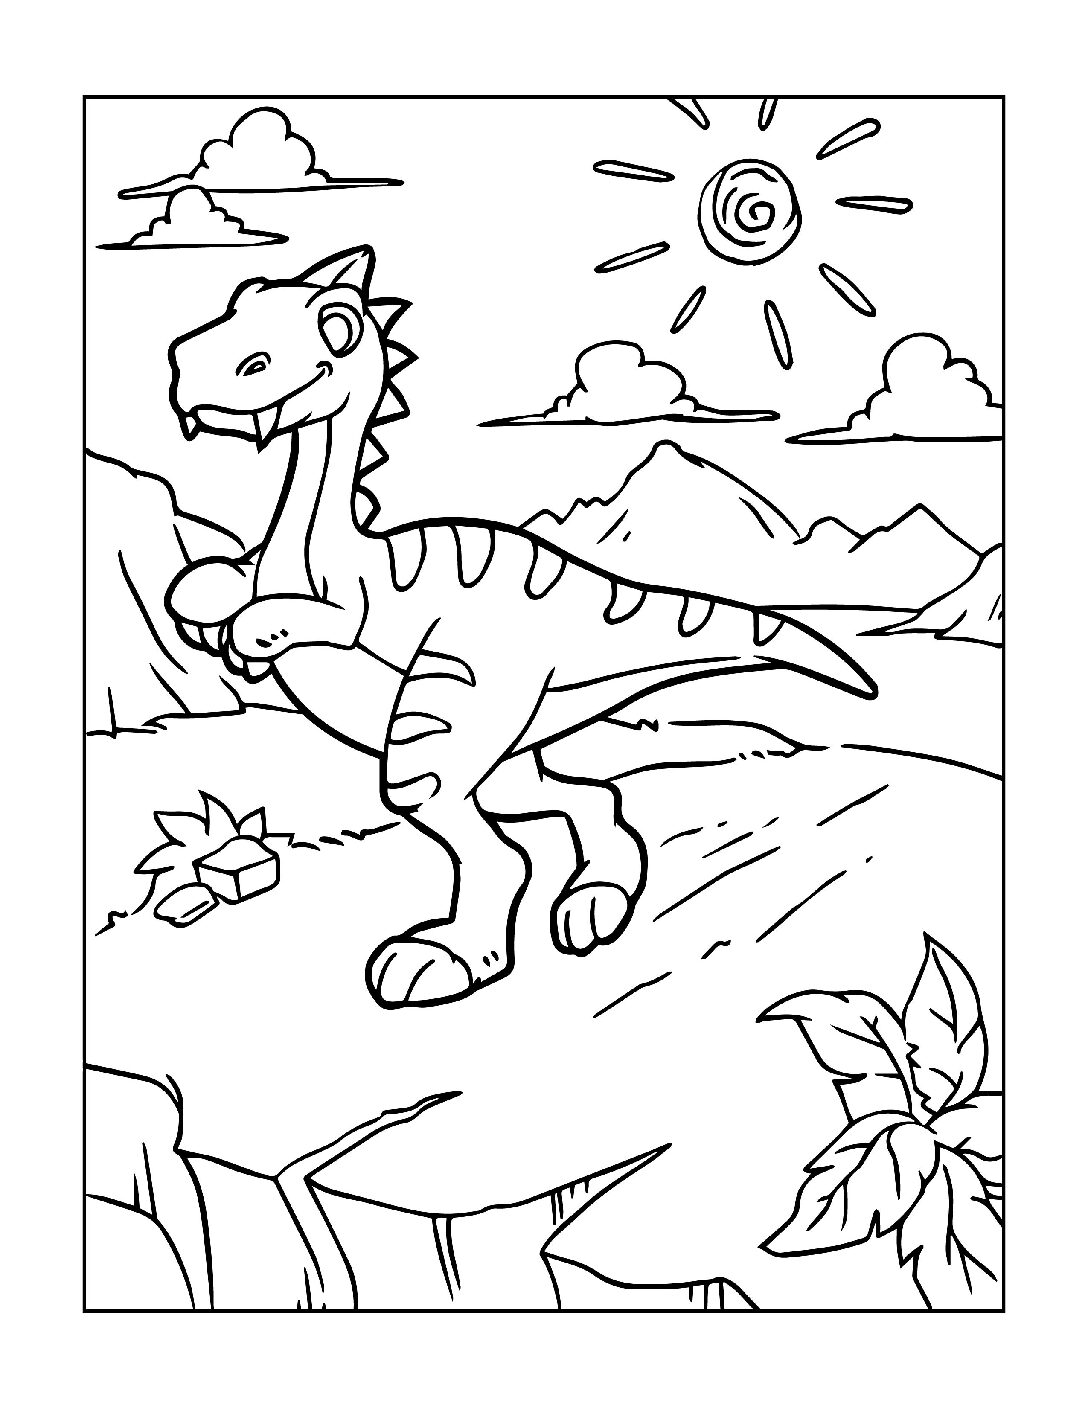 Coloring-Pages-Dinosaur-12-pdf Free Printable Dinasour Colouring Pages